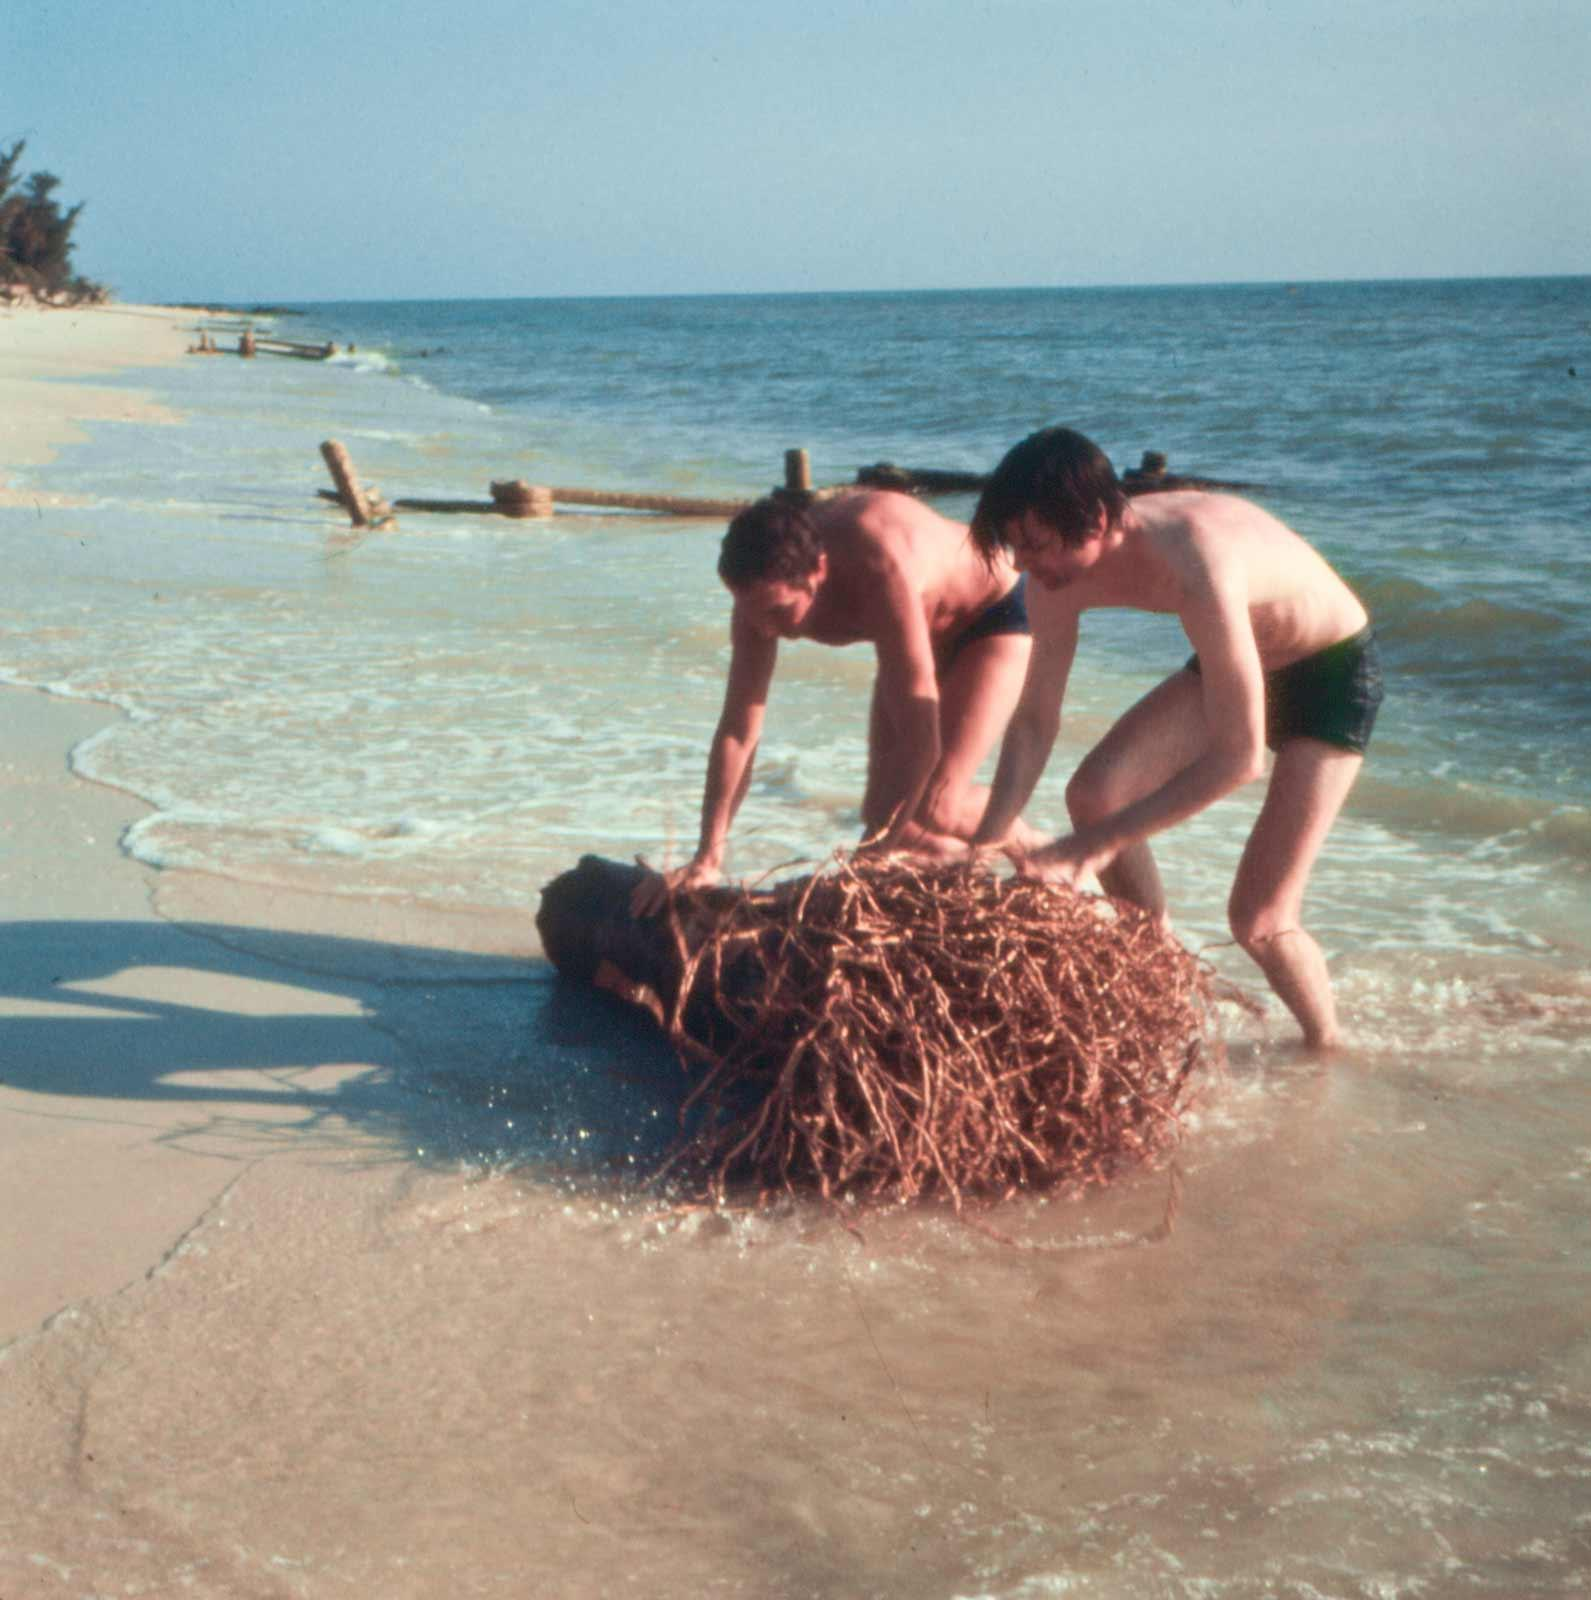 Two men in swimsuits leaned over pushing a tree stump on a sandy beach.